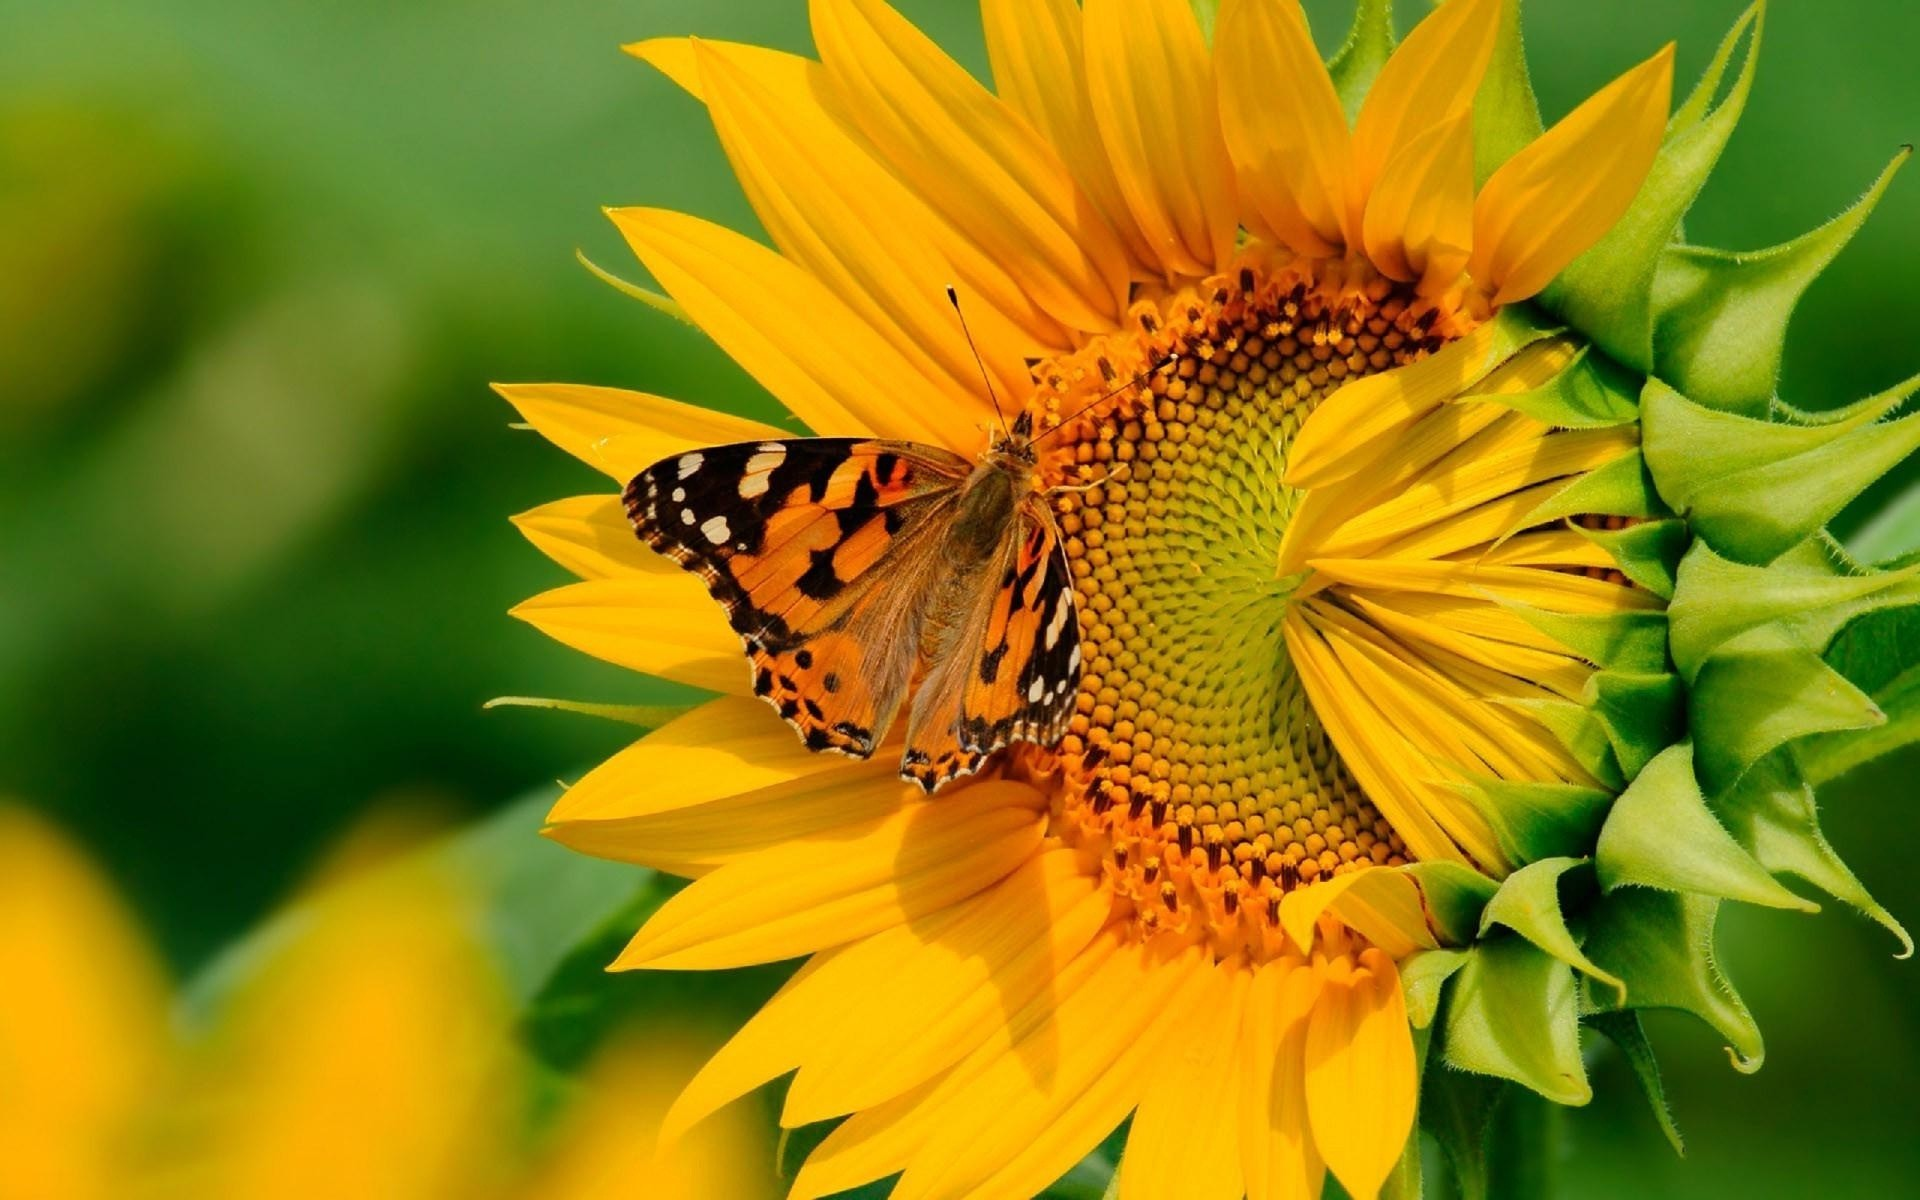 Res: 1920x1200, butterfly-on-the-sunflower-awesome-hd-wallpapers